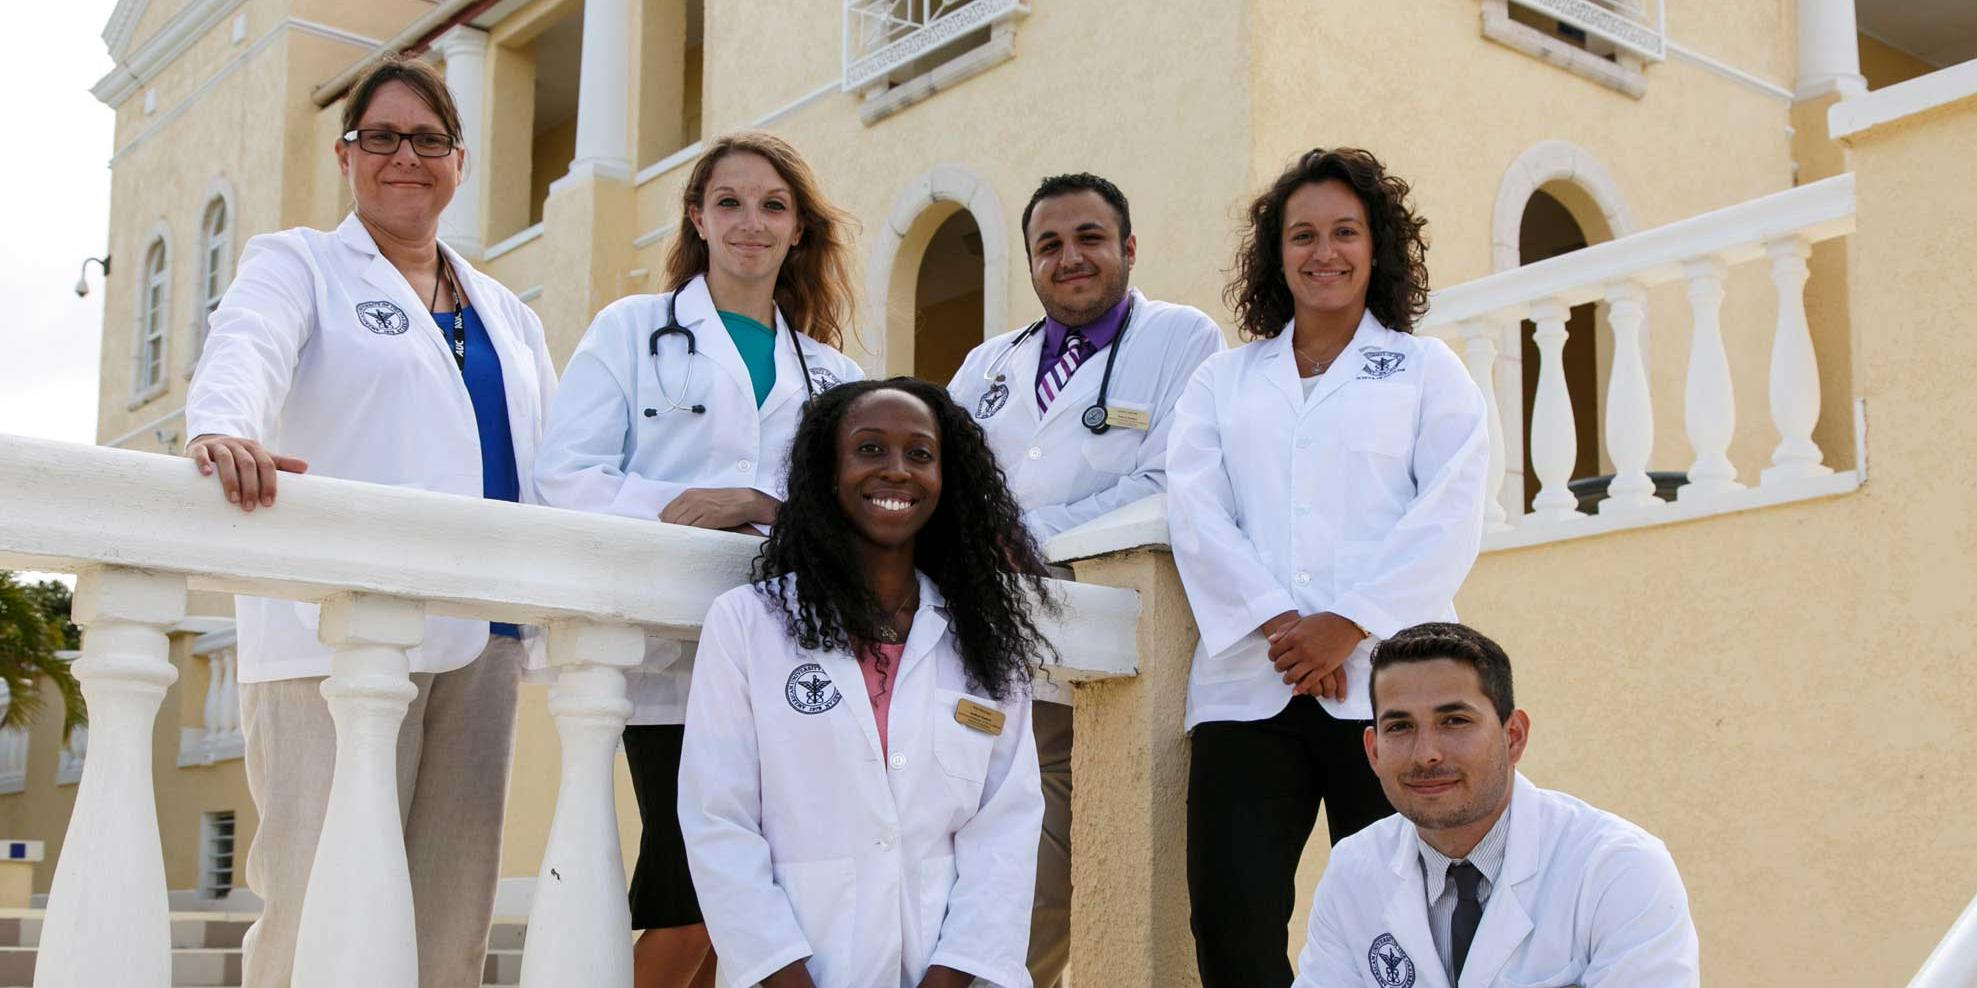 Group picture of AUC students in white coats